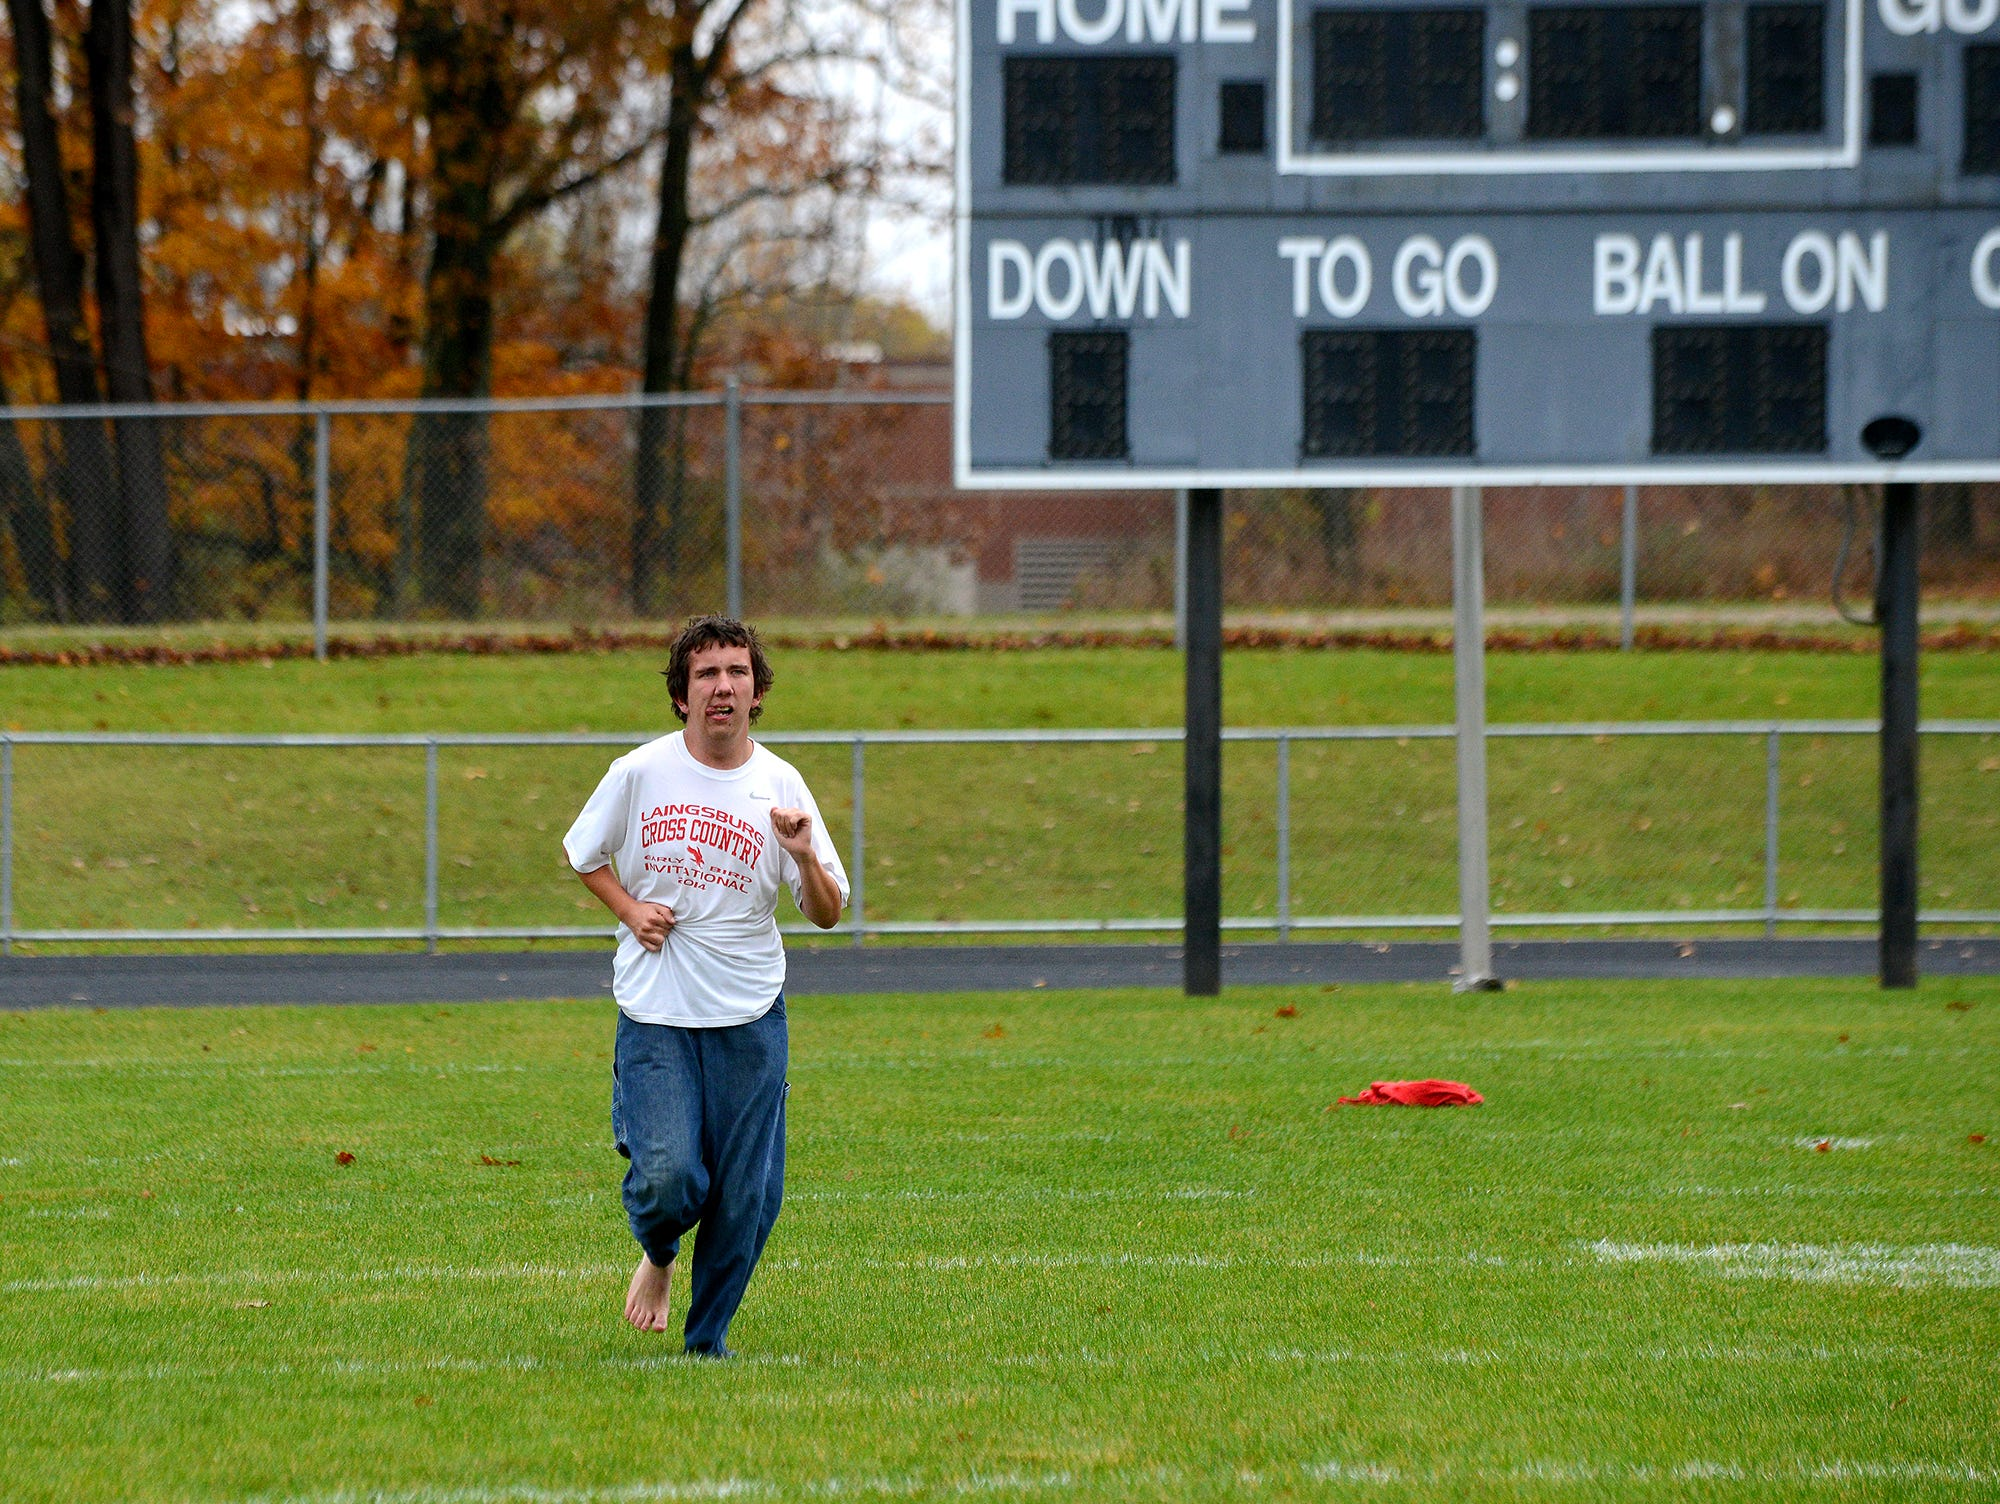 """Ray Latchaw practices with his teammates on the Laingsburg cross country team Wednesday, October 28, 2015 at Laingsburg High School. Latchaw, a junior, is autistic, but runs, he says, to stay healthy and because he enjoys the """"me time"""" he gets. Ray forgot his running gear at home, so he had to run in jeans."""